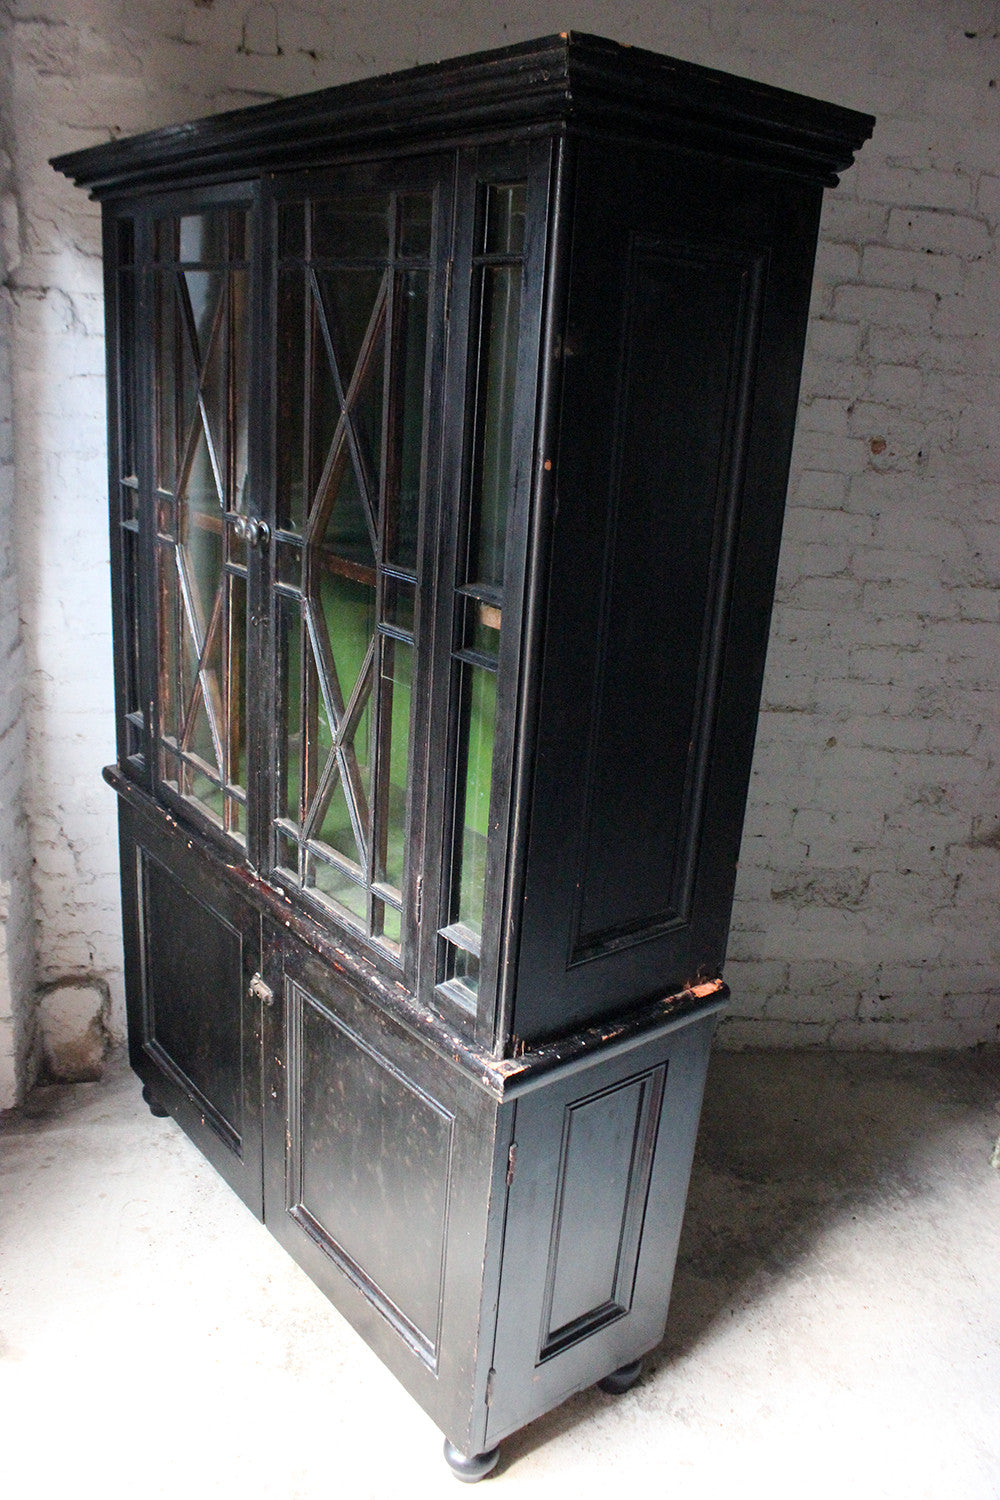 A Wonderful Early 19thC Cornish Painted Pine Glazed Housekeeper's Cupboard c.1810-30